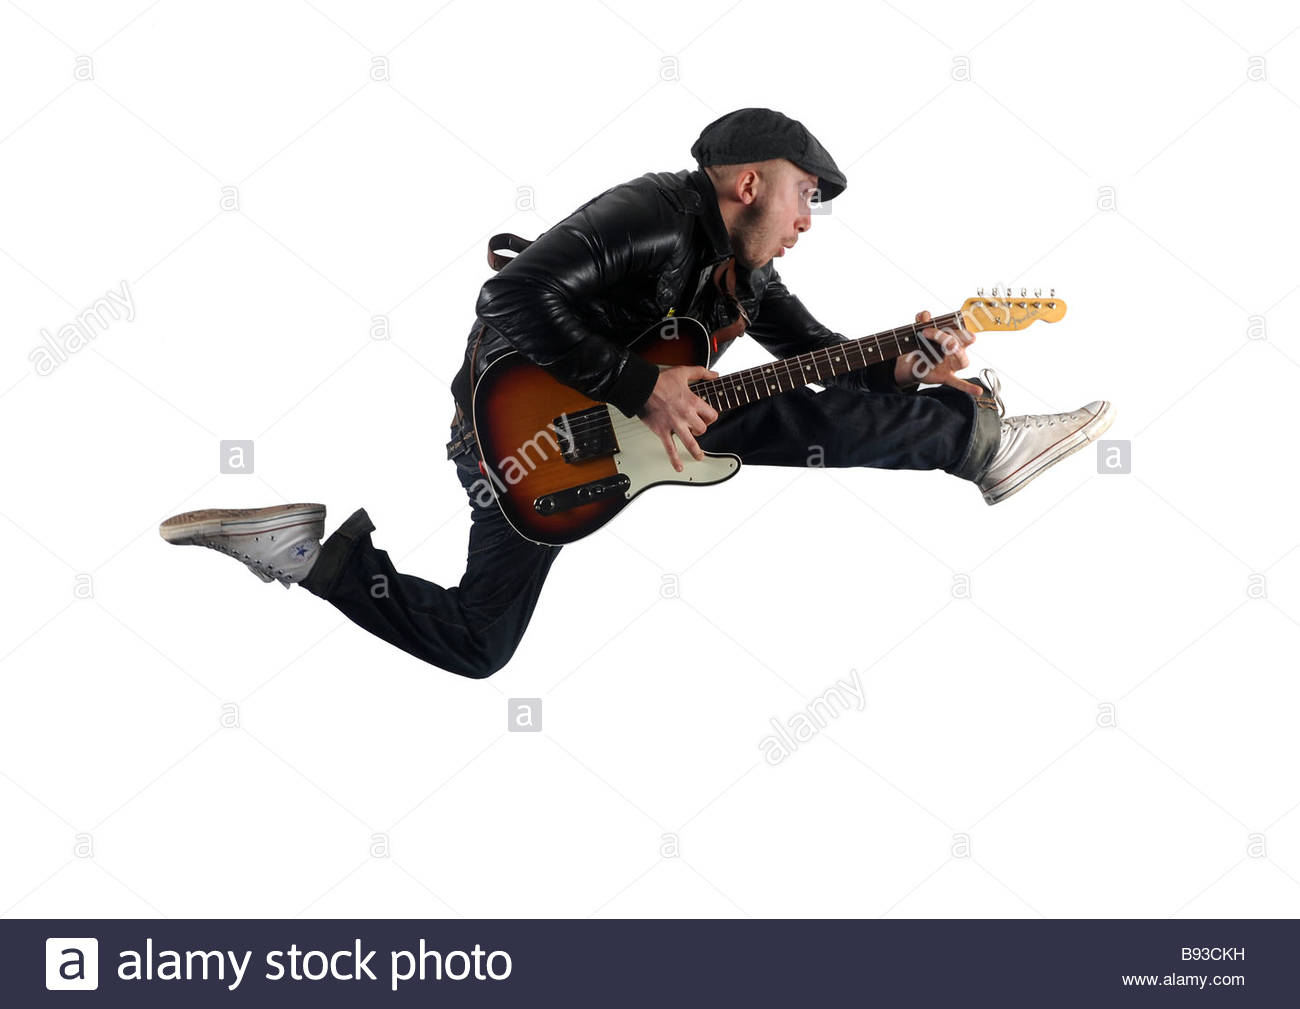 A band member jumps whilst holding a guitar - Stock Image